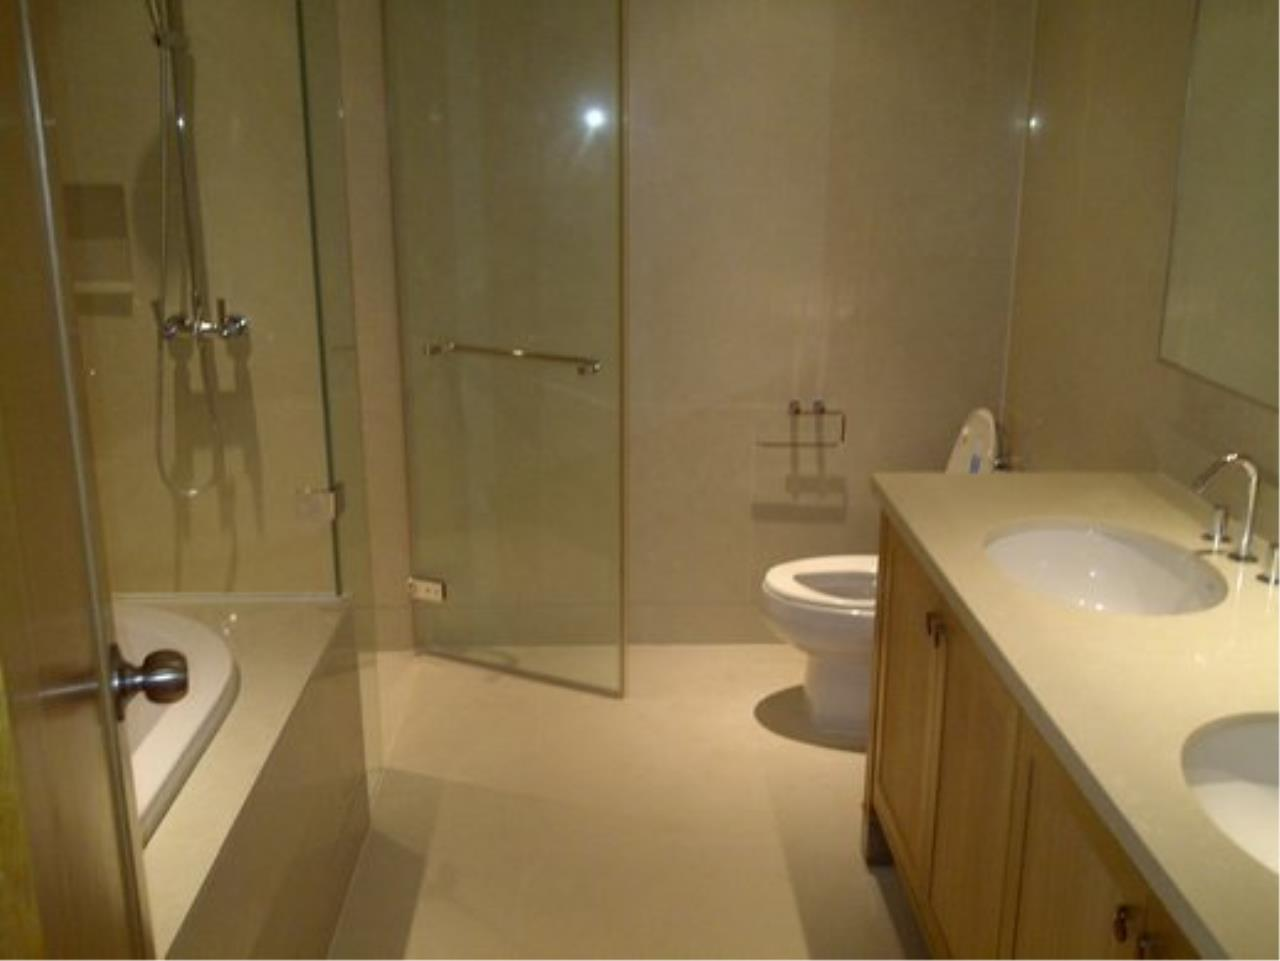 Piri Property Agency's Duplex 1 Bedroom Condo in the Emporio Place building for rent on high floor 14